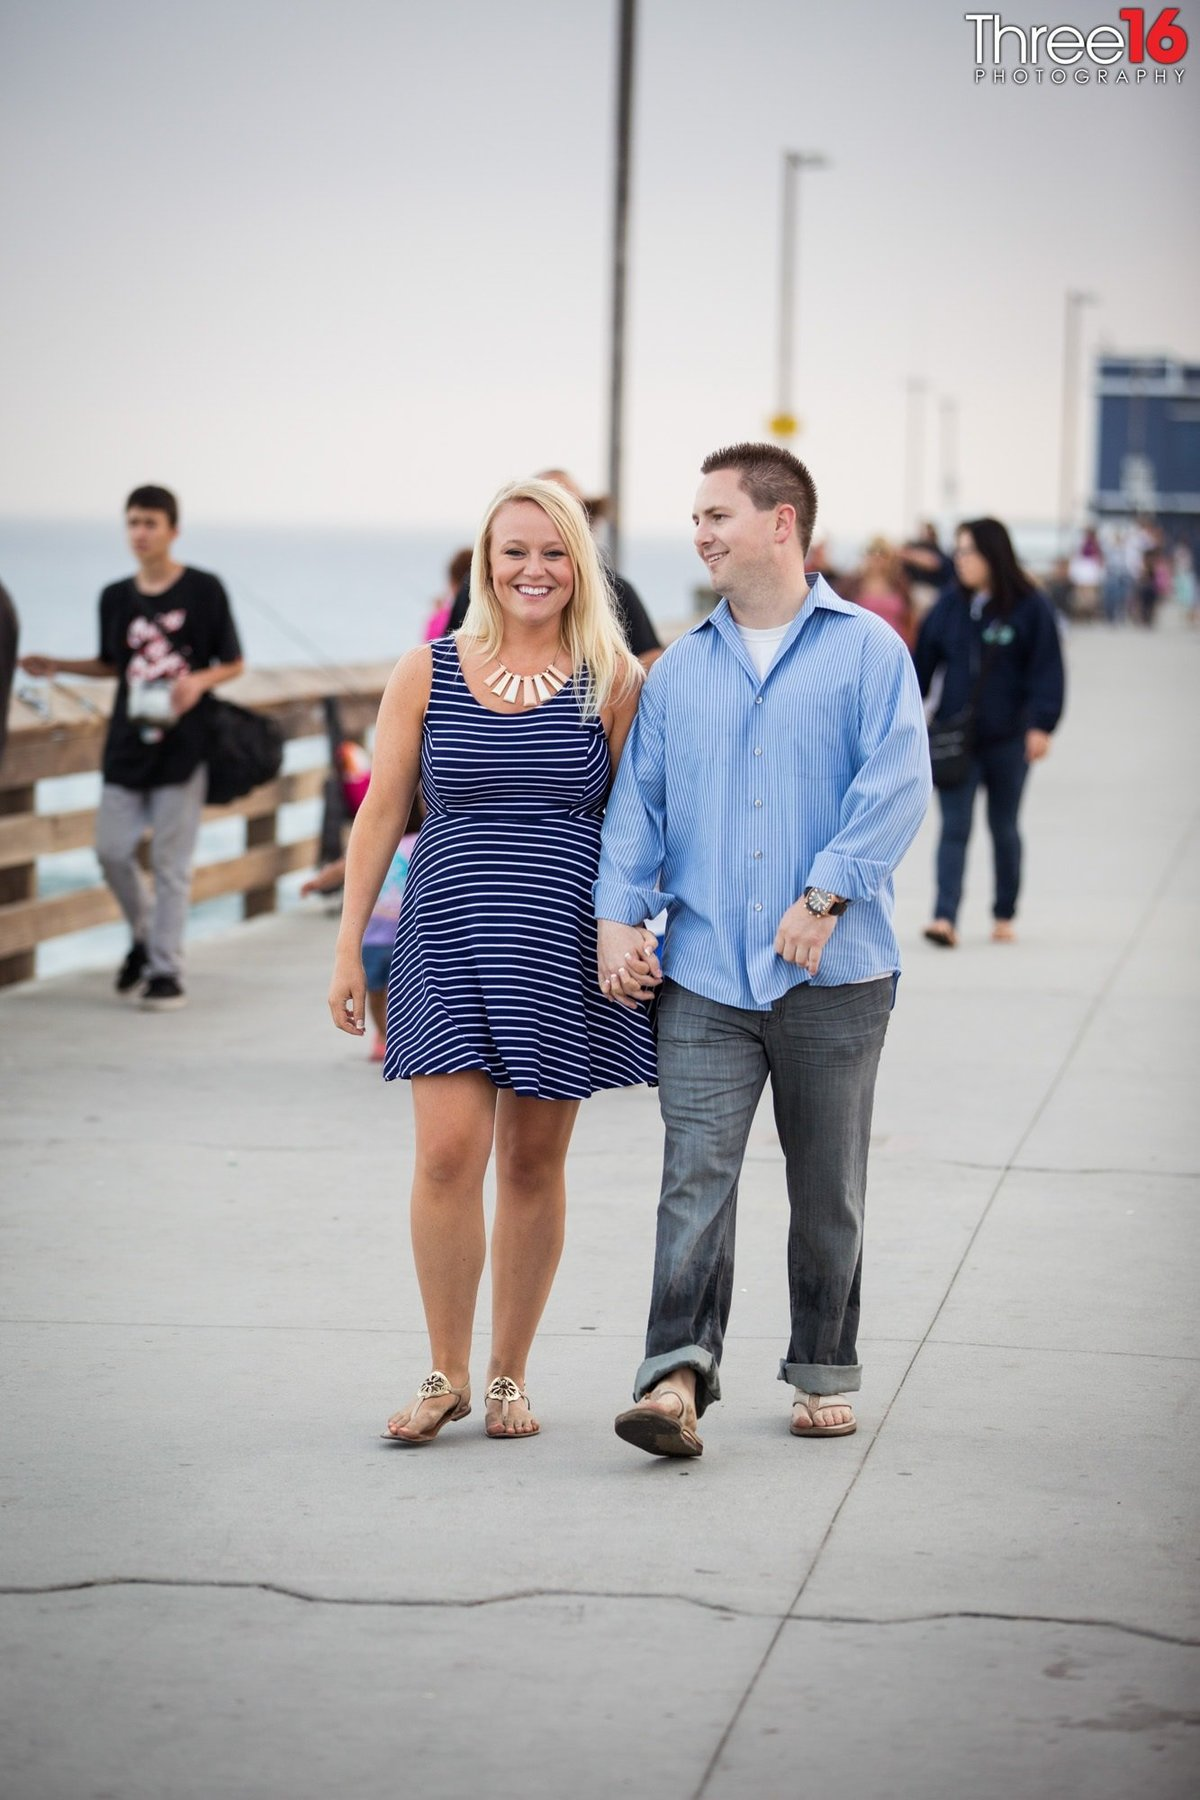 Newport Beach Pier Engagement Photos Orange County Newport Beach